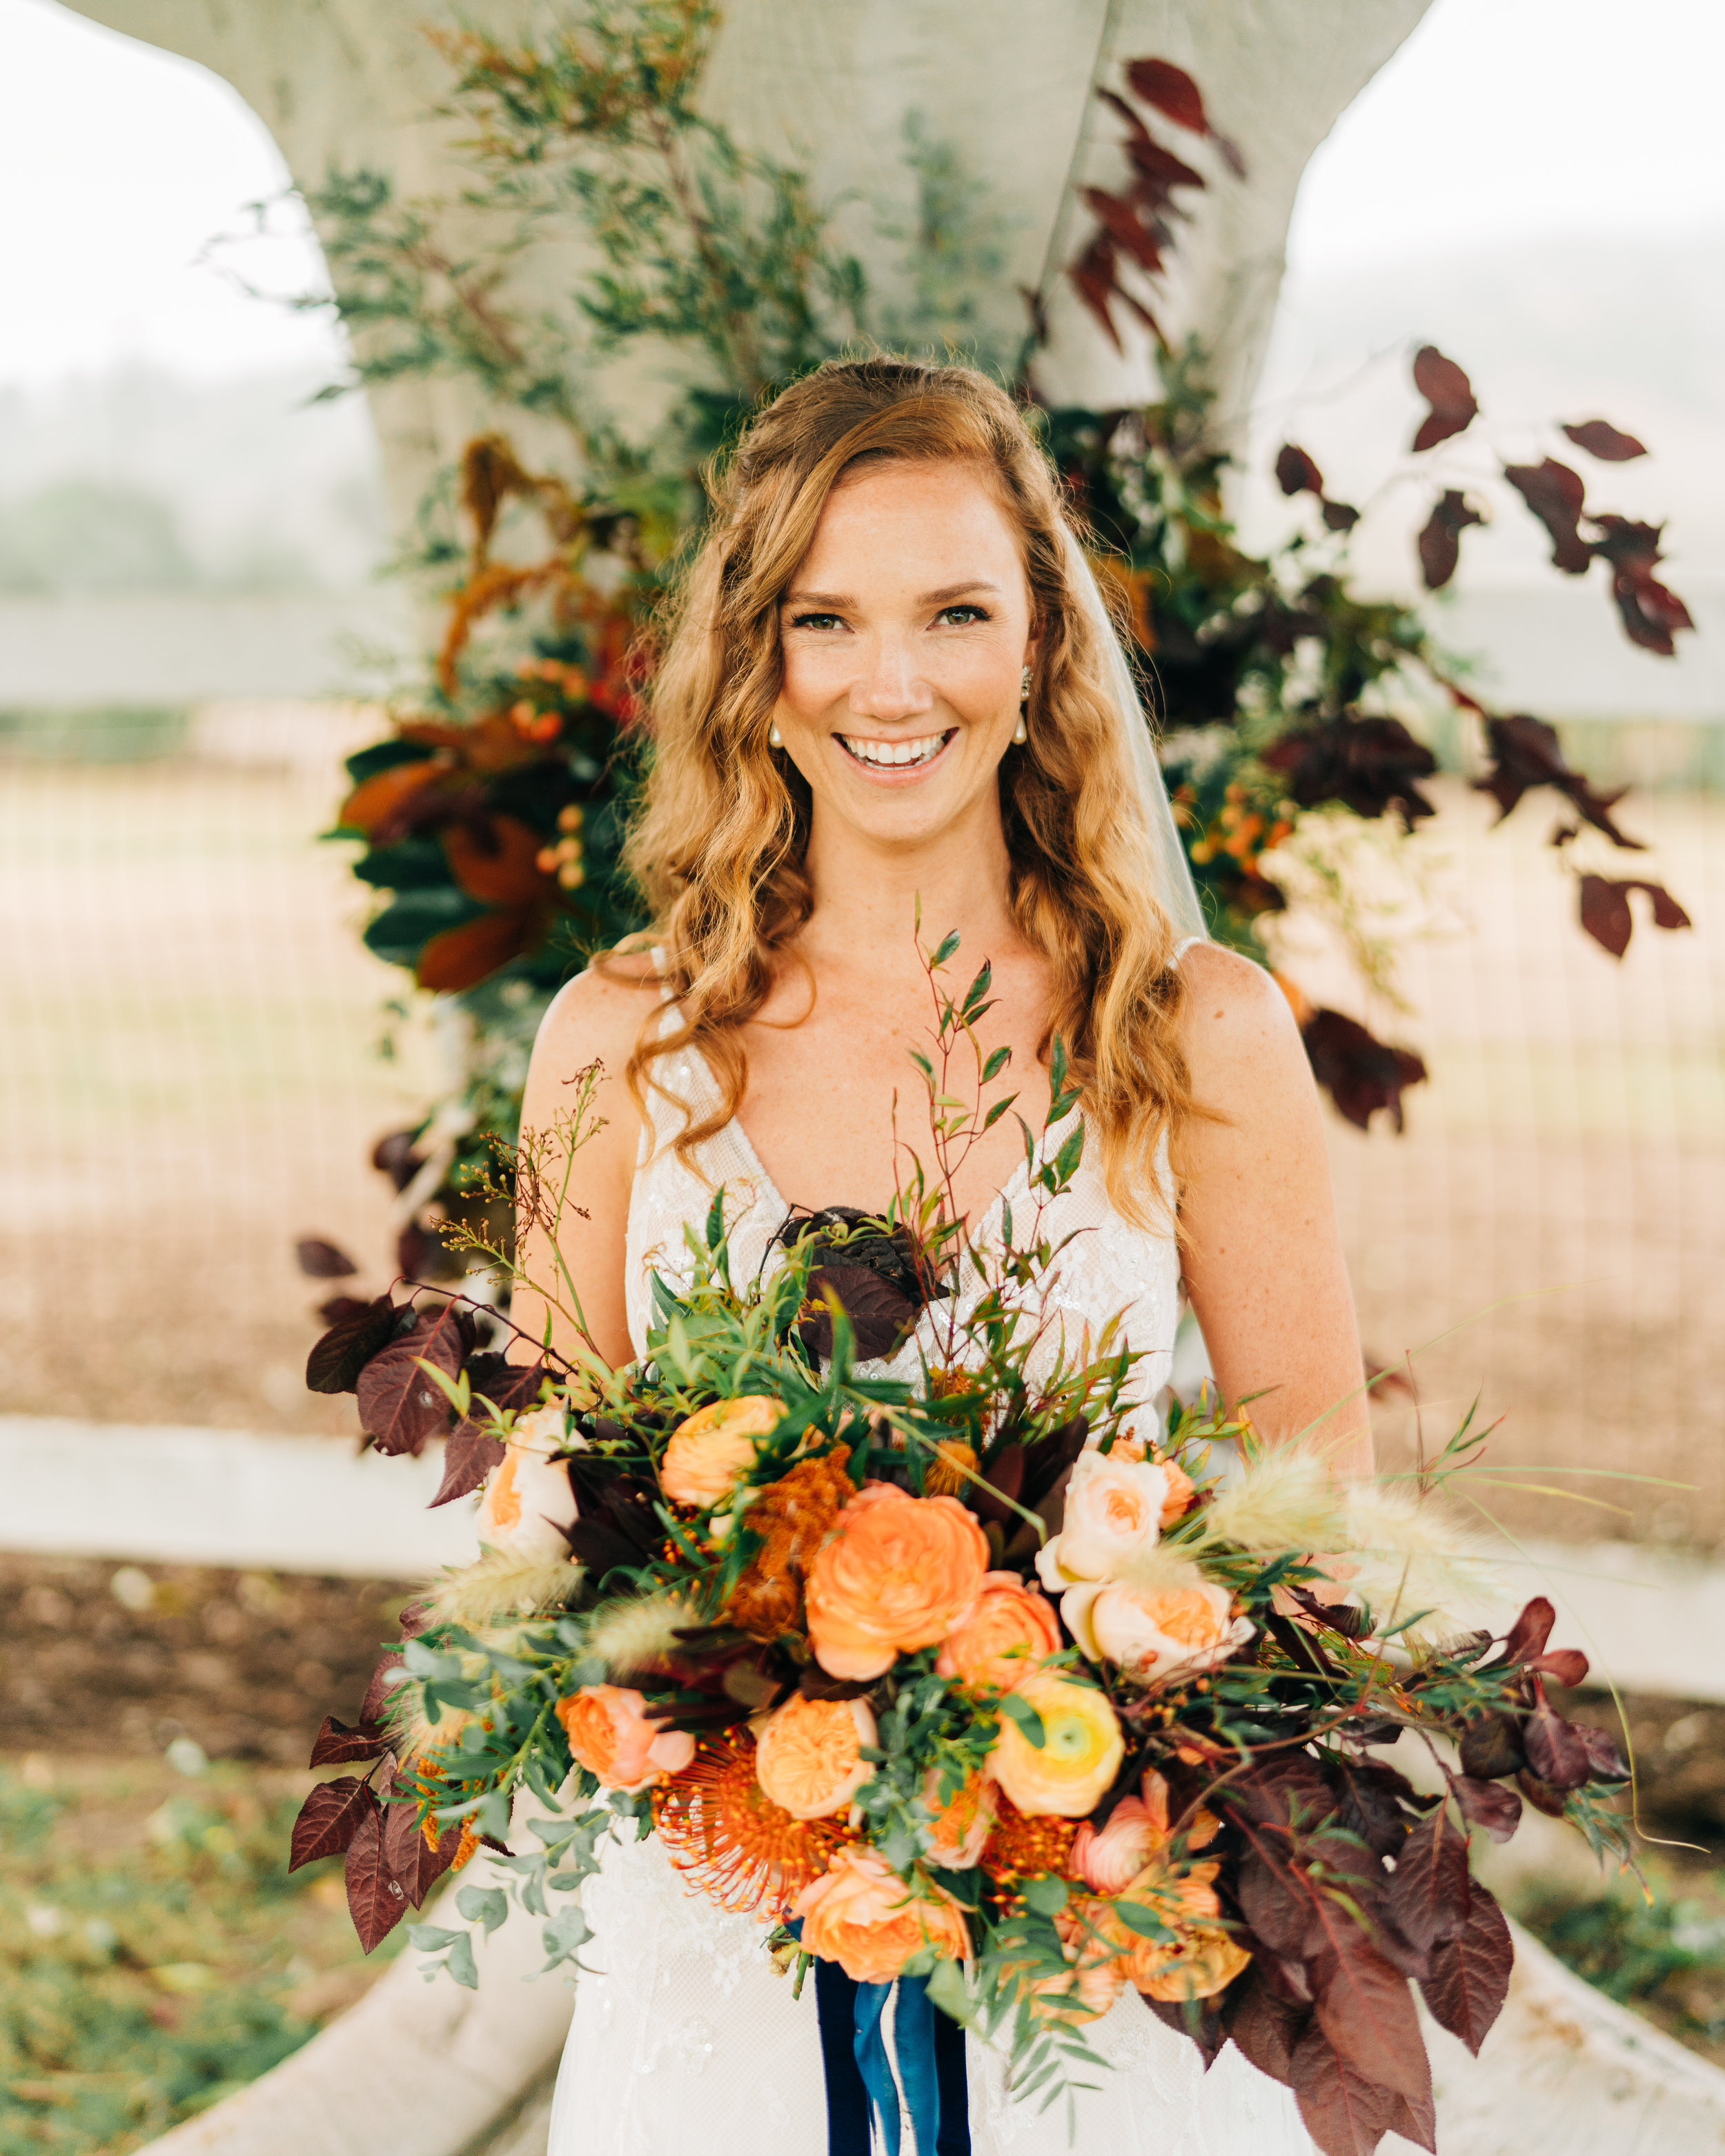 www.santabarbarawedding.com | Brandon Bibbins Photography | The Cottages at Polo Run | Christina Welch Floral | Bride Holds Bouquet